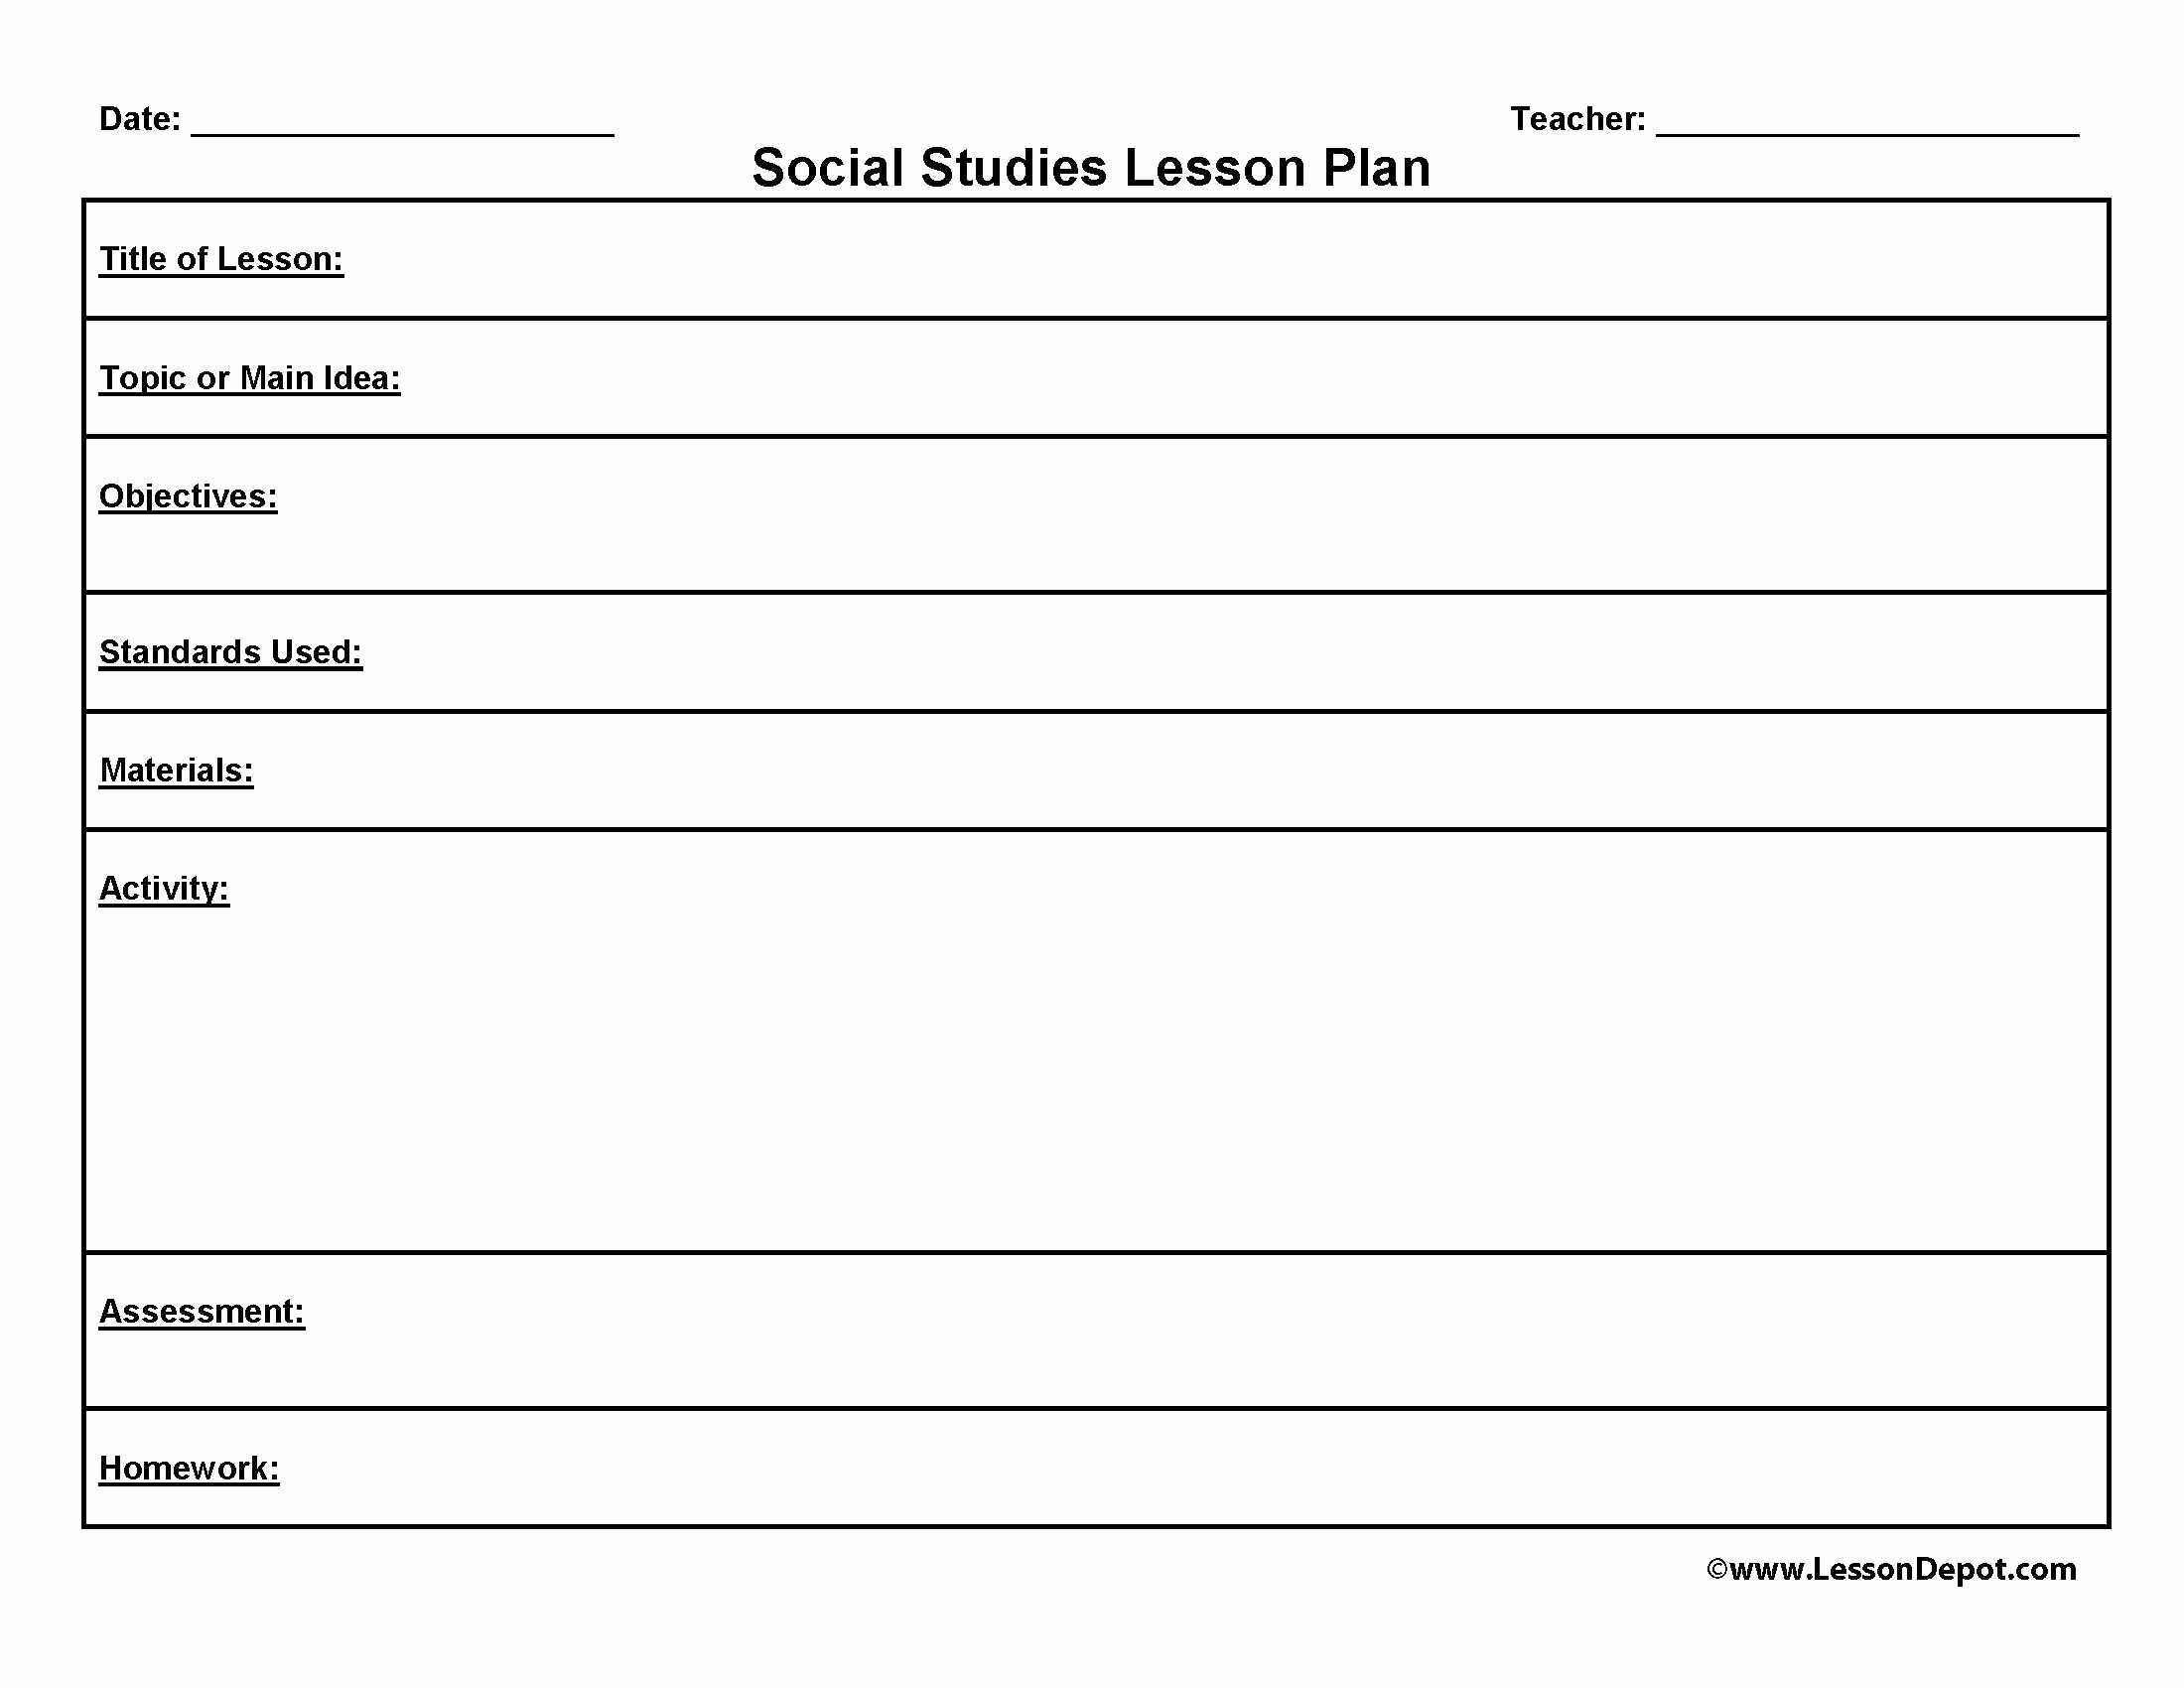 Lesson Plan Outline Template Elegant Printable Blank Lesson Plans form